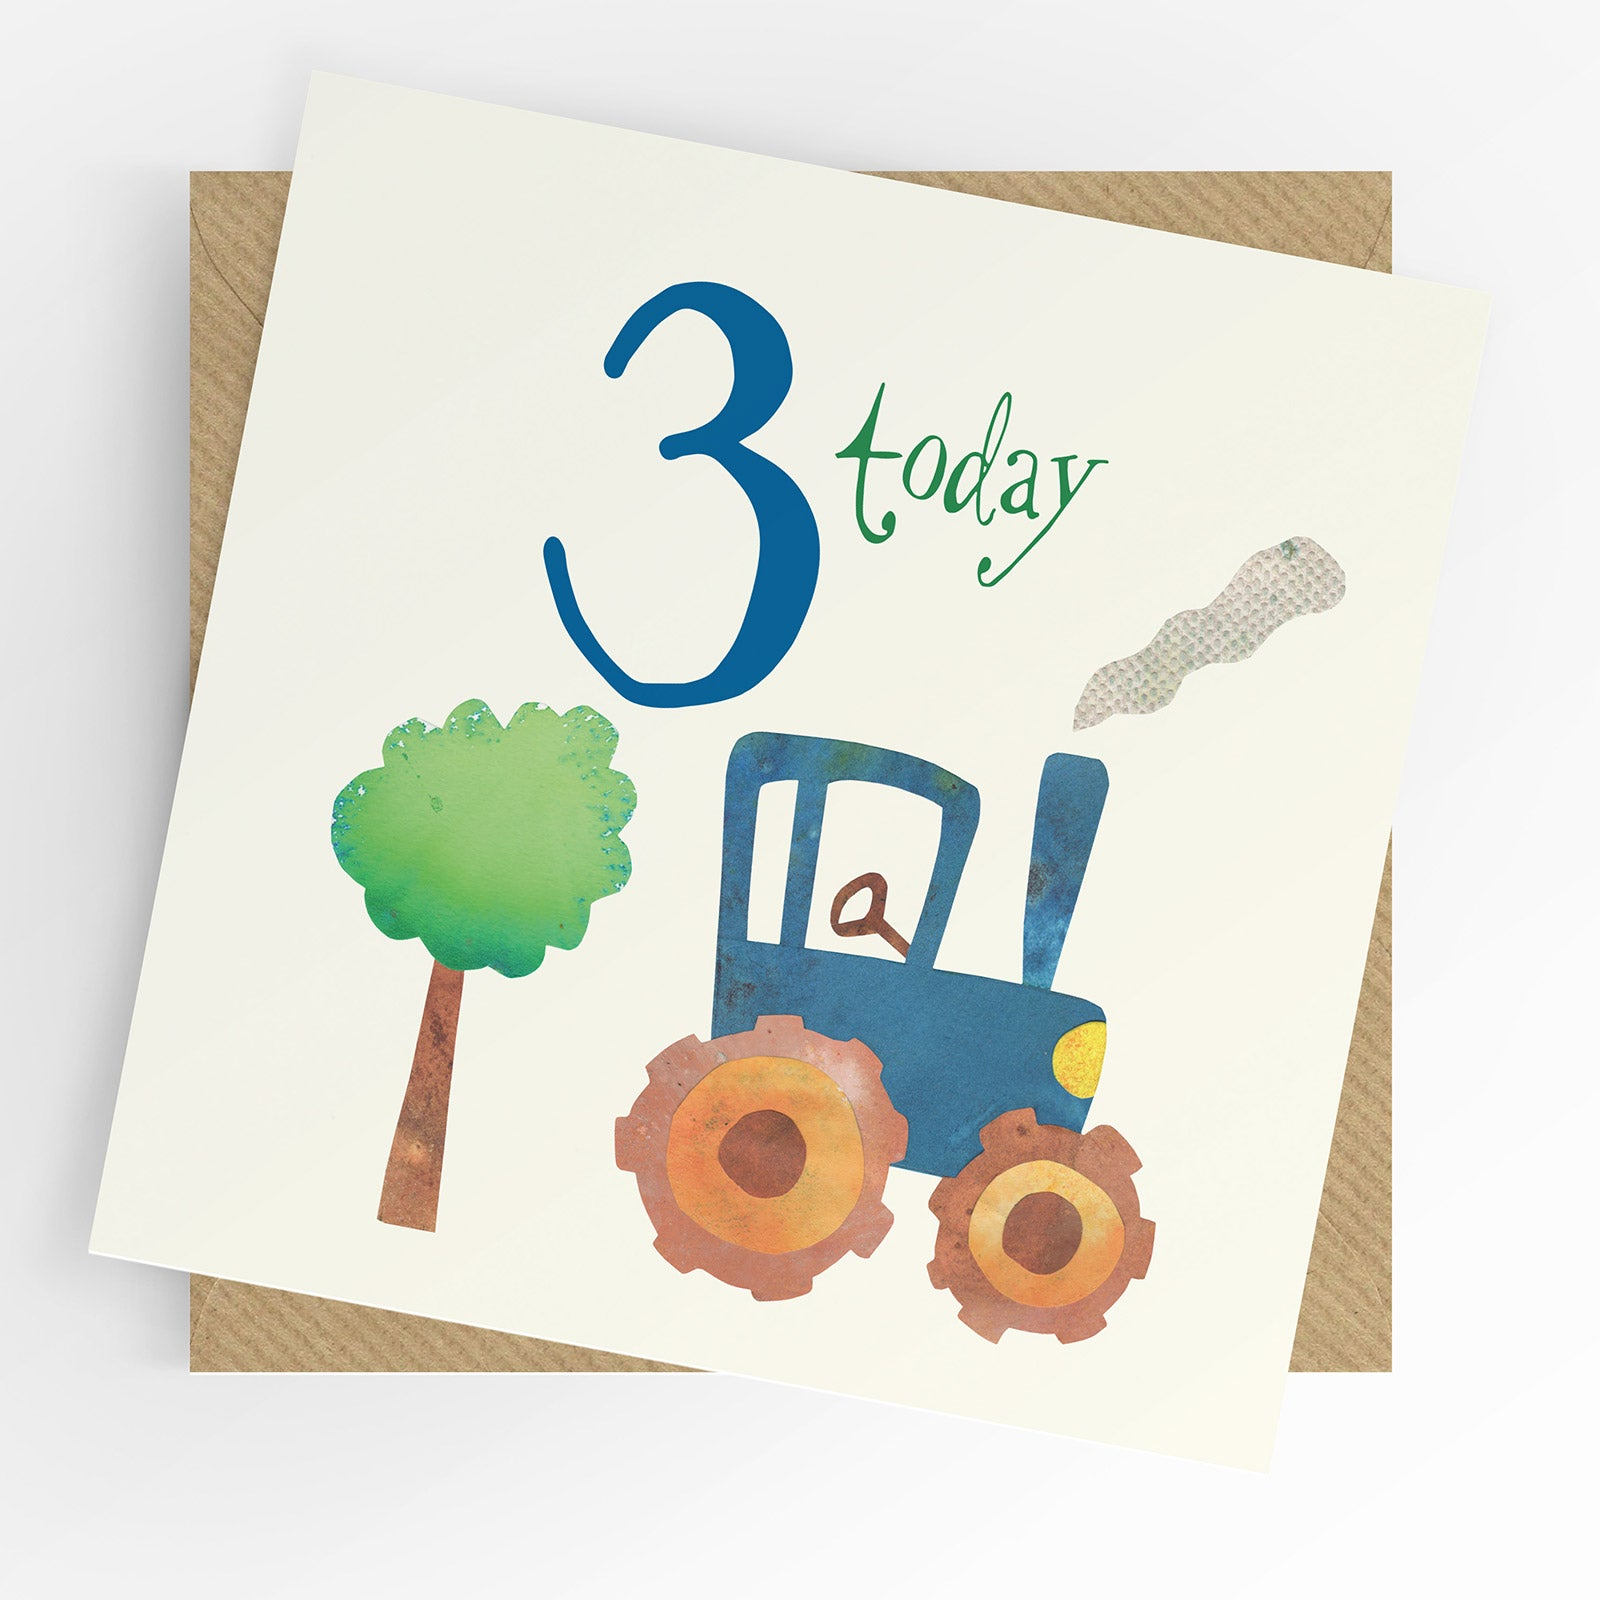 UTWT card - 3 today tractor